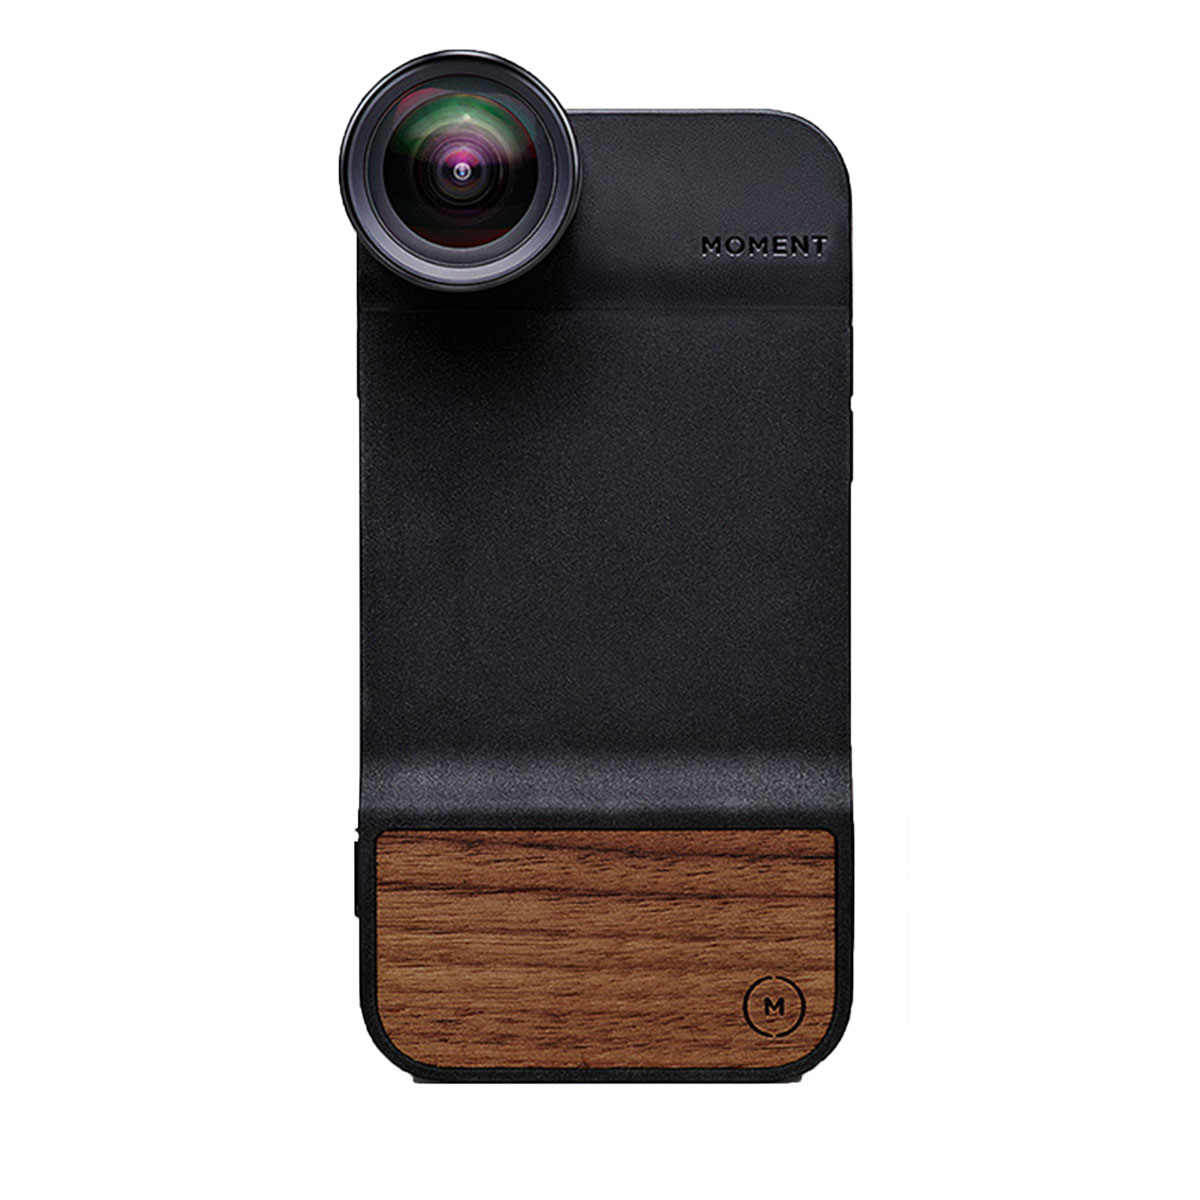 Moment Lens iPhone Case